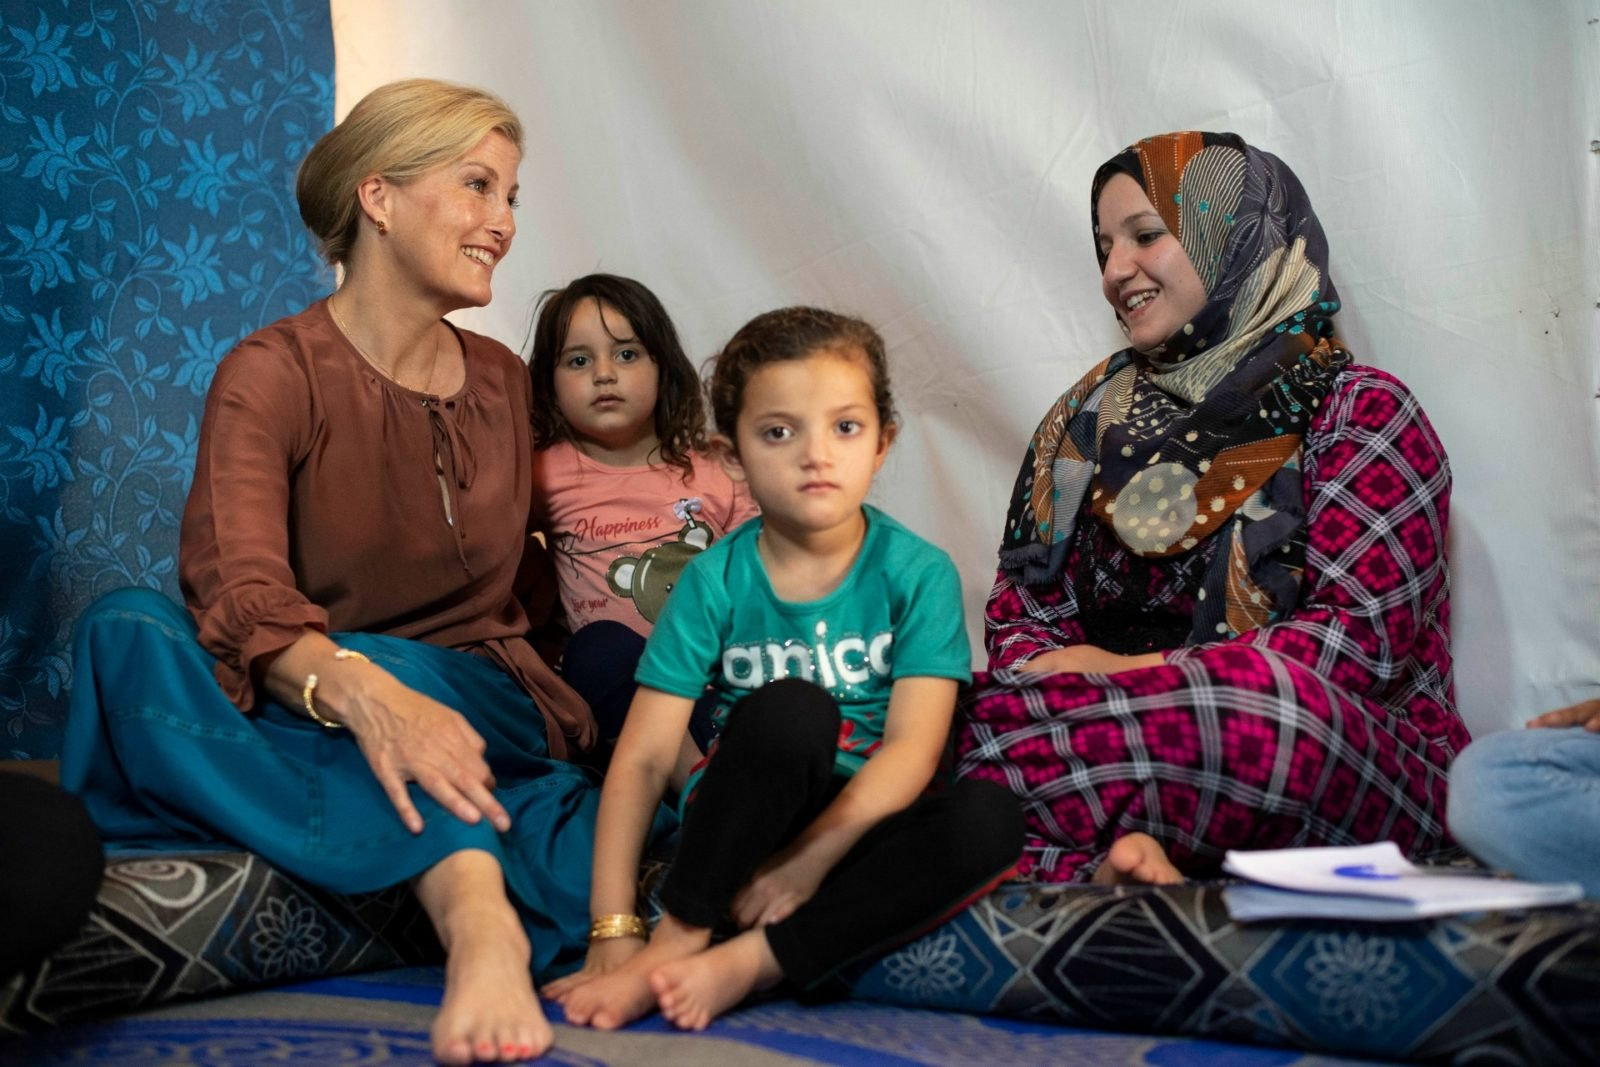 Sophie Wessex met with families on her first visit to Lebanon.